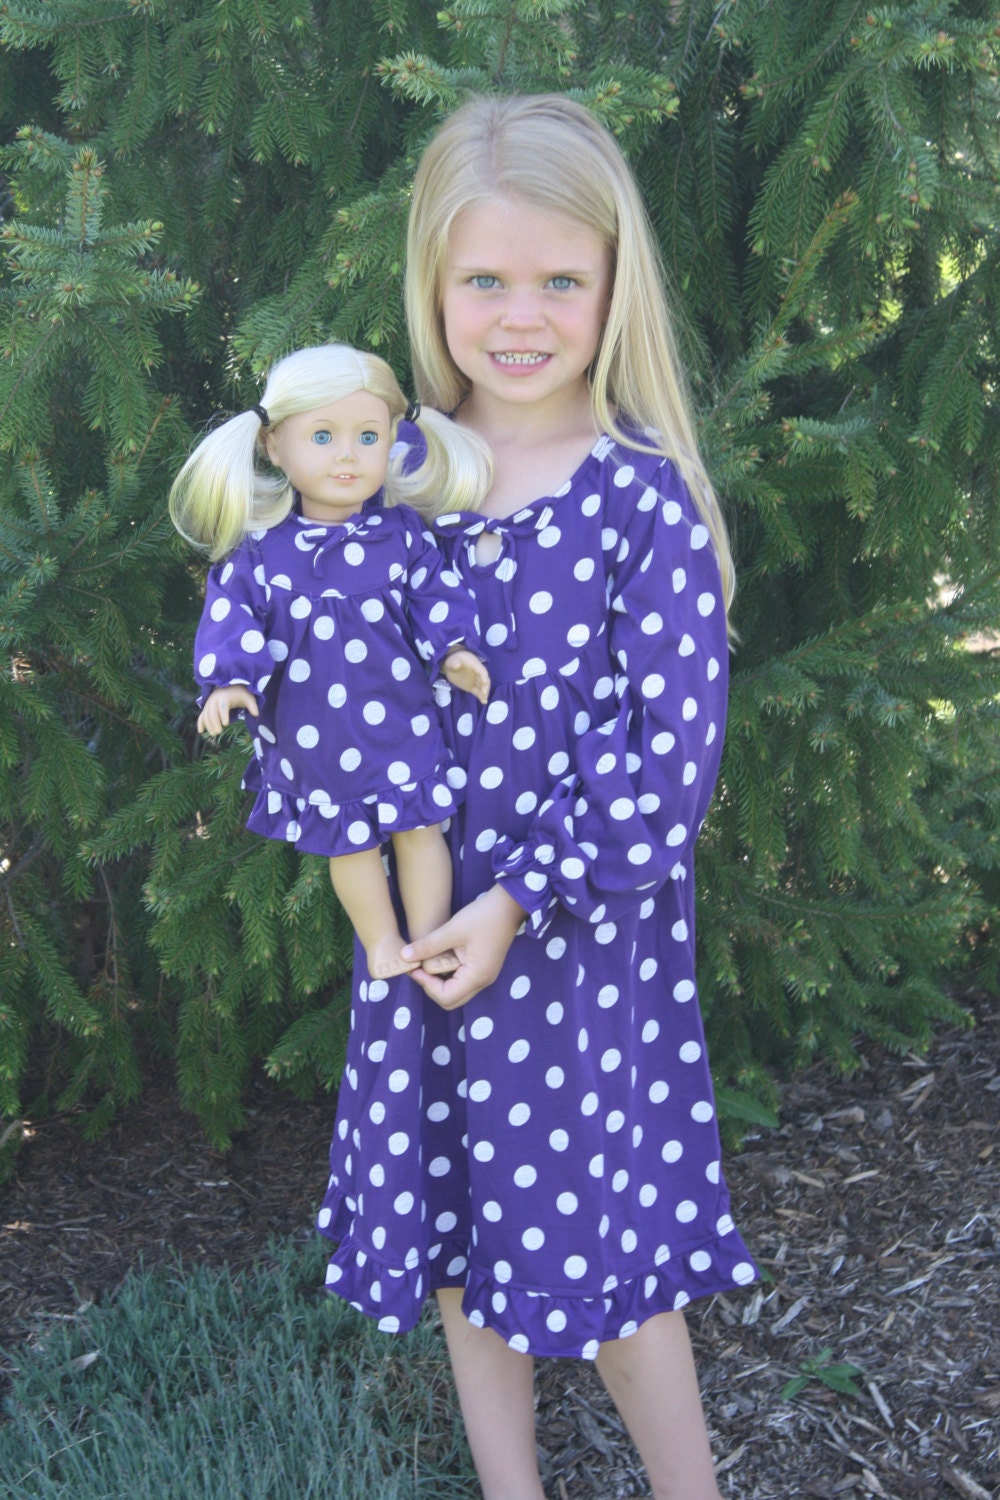 When I was little, my Aunt made me a rag doll, every Christmas & Birthday she made a new matching outfit for me and my doll. I thought it was the most awesome thing ever. I don't make dolls, but my 2 girls each have American Girl dolls, and I have made several matching dresses, nightgowns & PJ's.